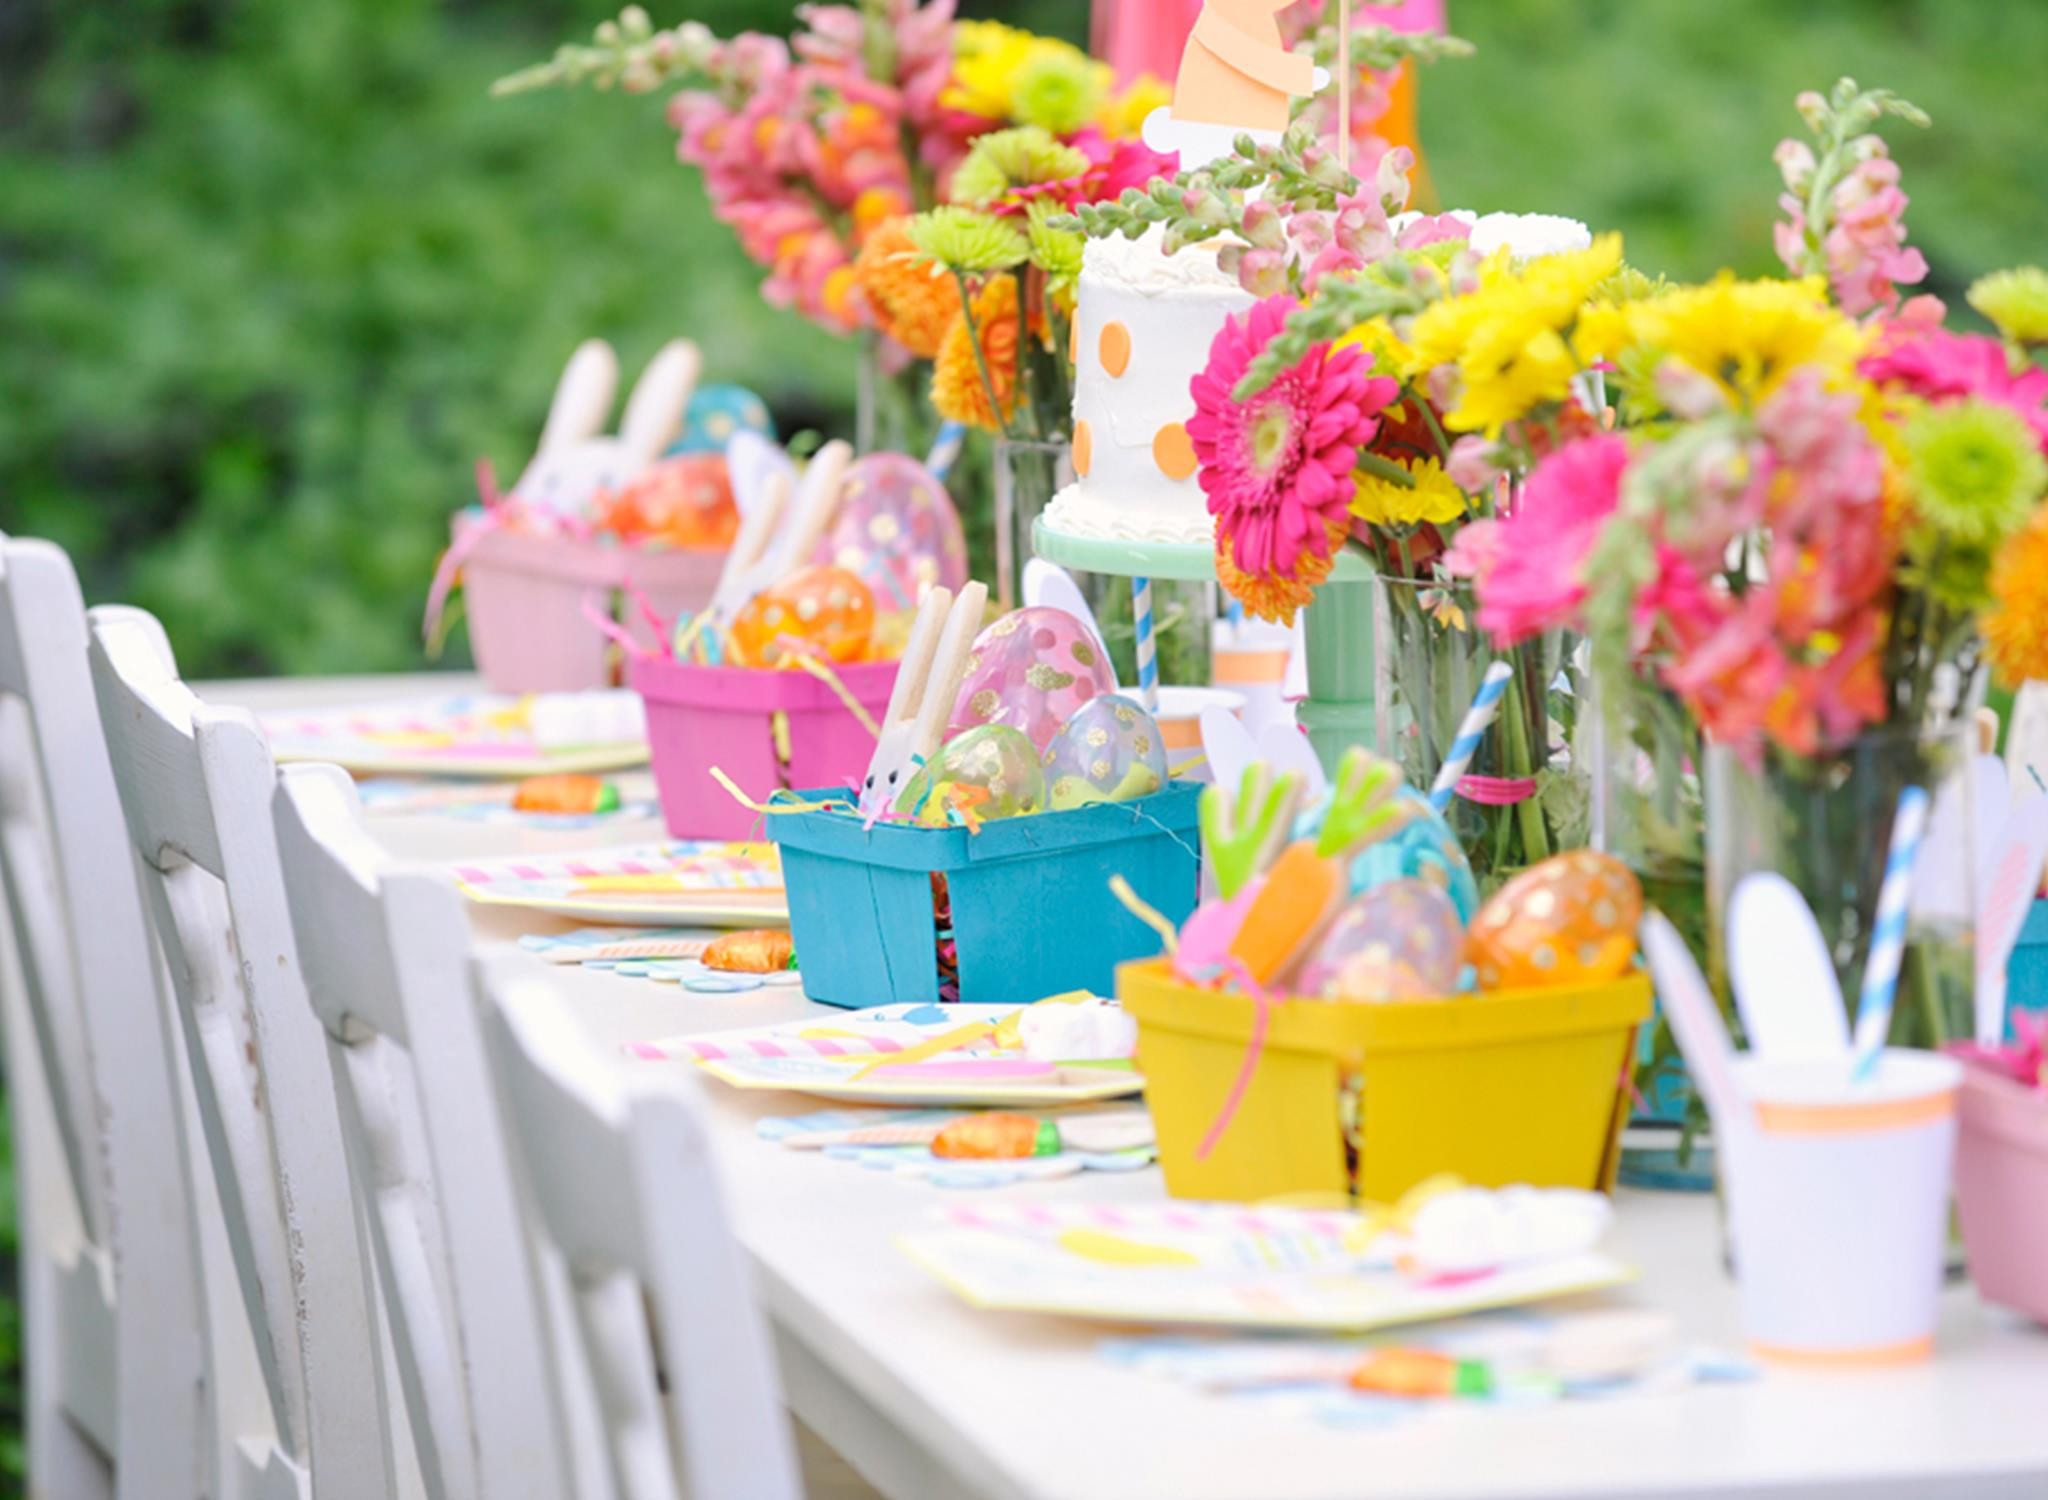 Easter Party Centerpiece Ideas  Plan a Bunny tastic Kids Easter Party Project Nursery